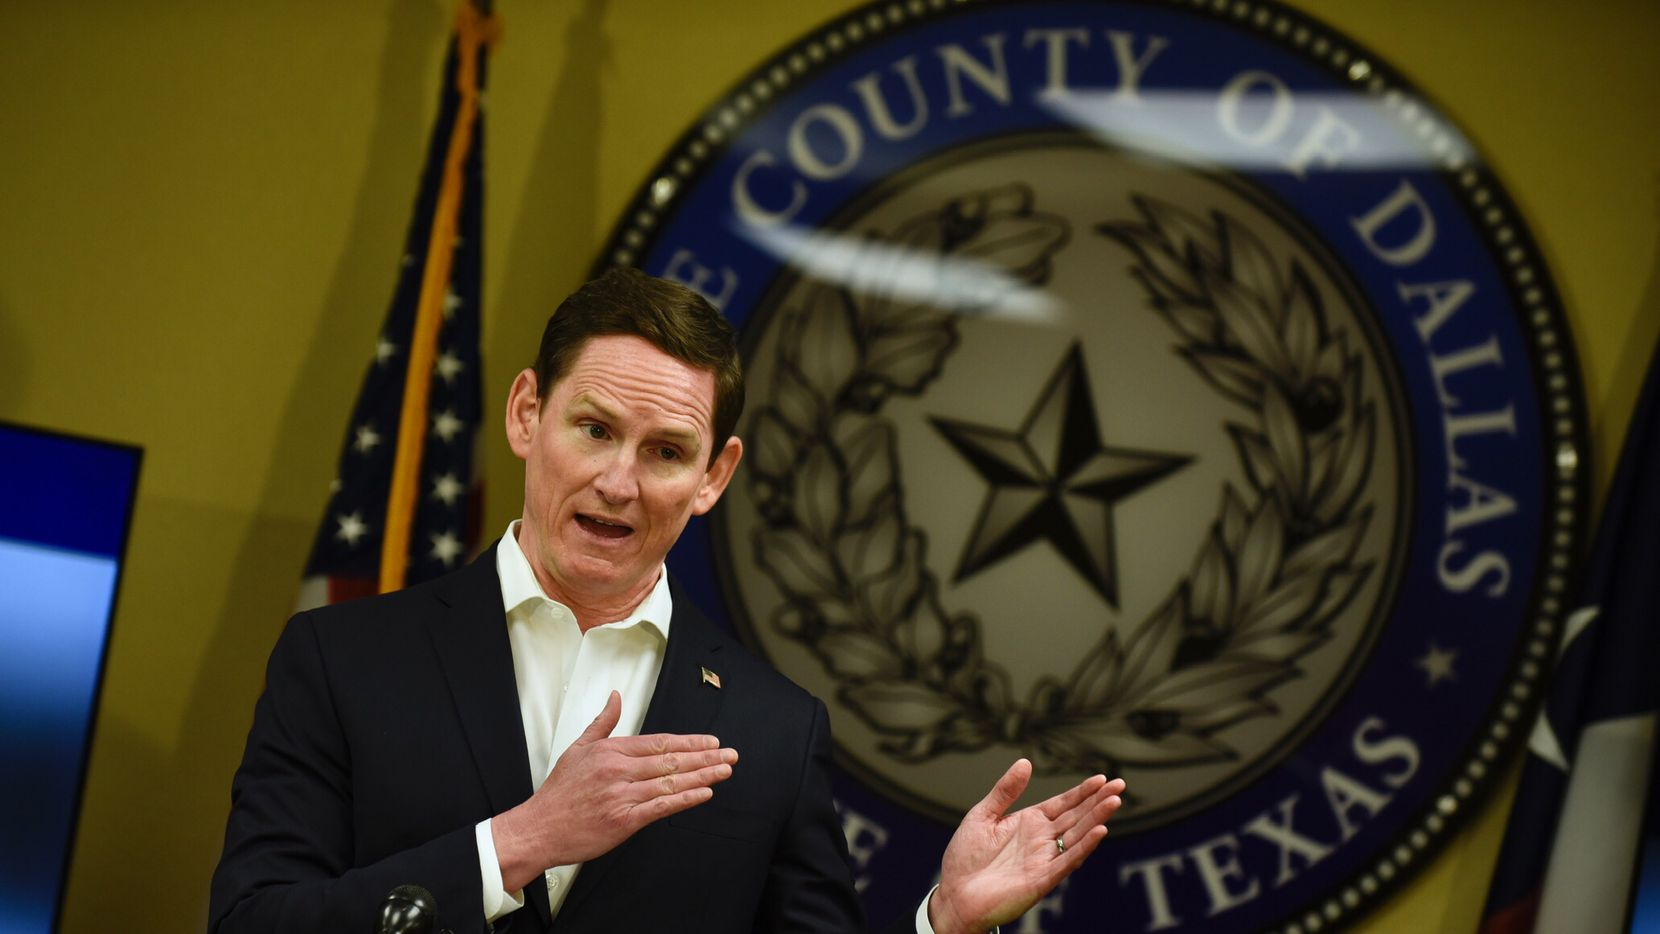 Dallas County Judge Clay Jenkins speaks during a press conference for a COVID-19 update at the Dallas County Office of Homeland Security and Emergency Management in Dallas, on April 14, 2020. (Ben Torres/Special Contributor)